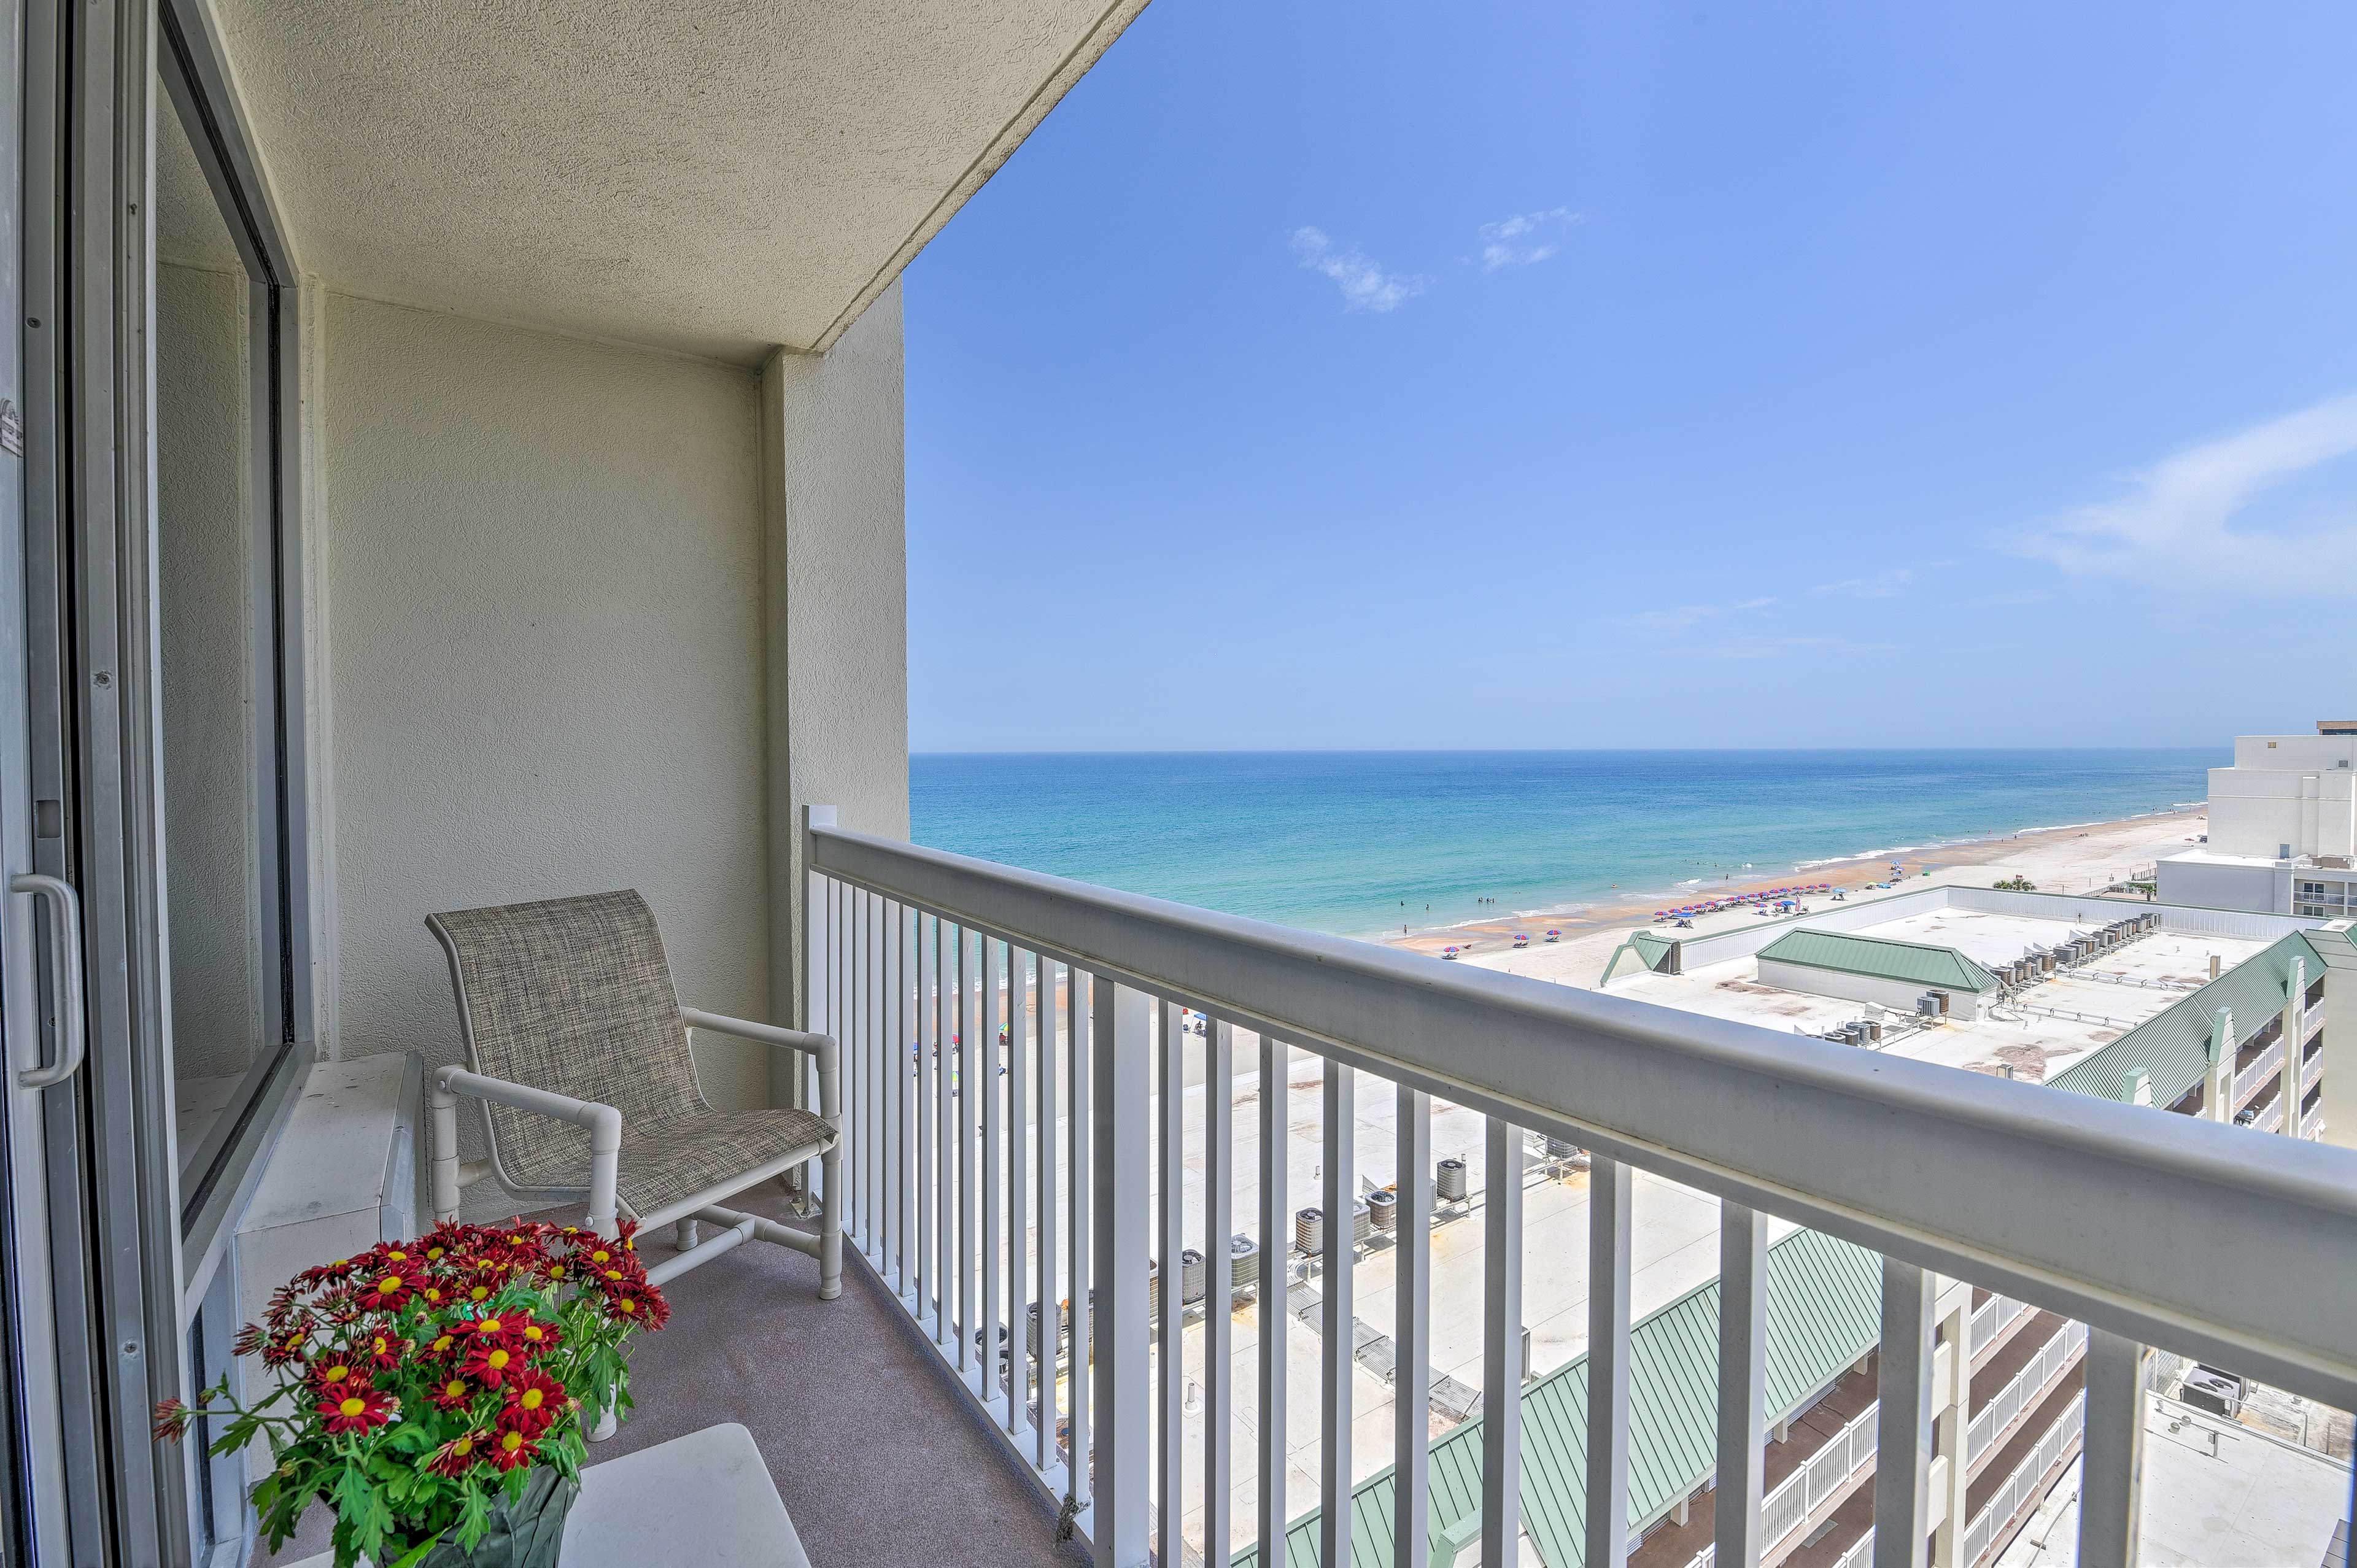 Wake up to this view every morning of your stay in Daytona Beach!